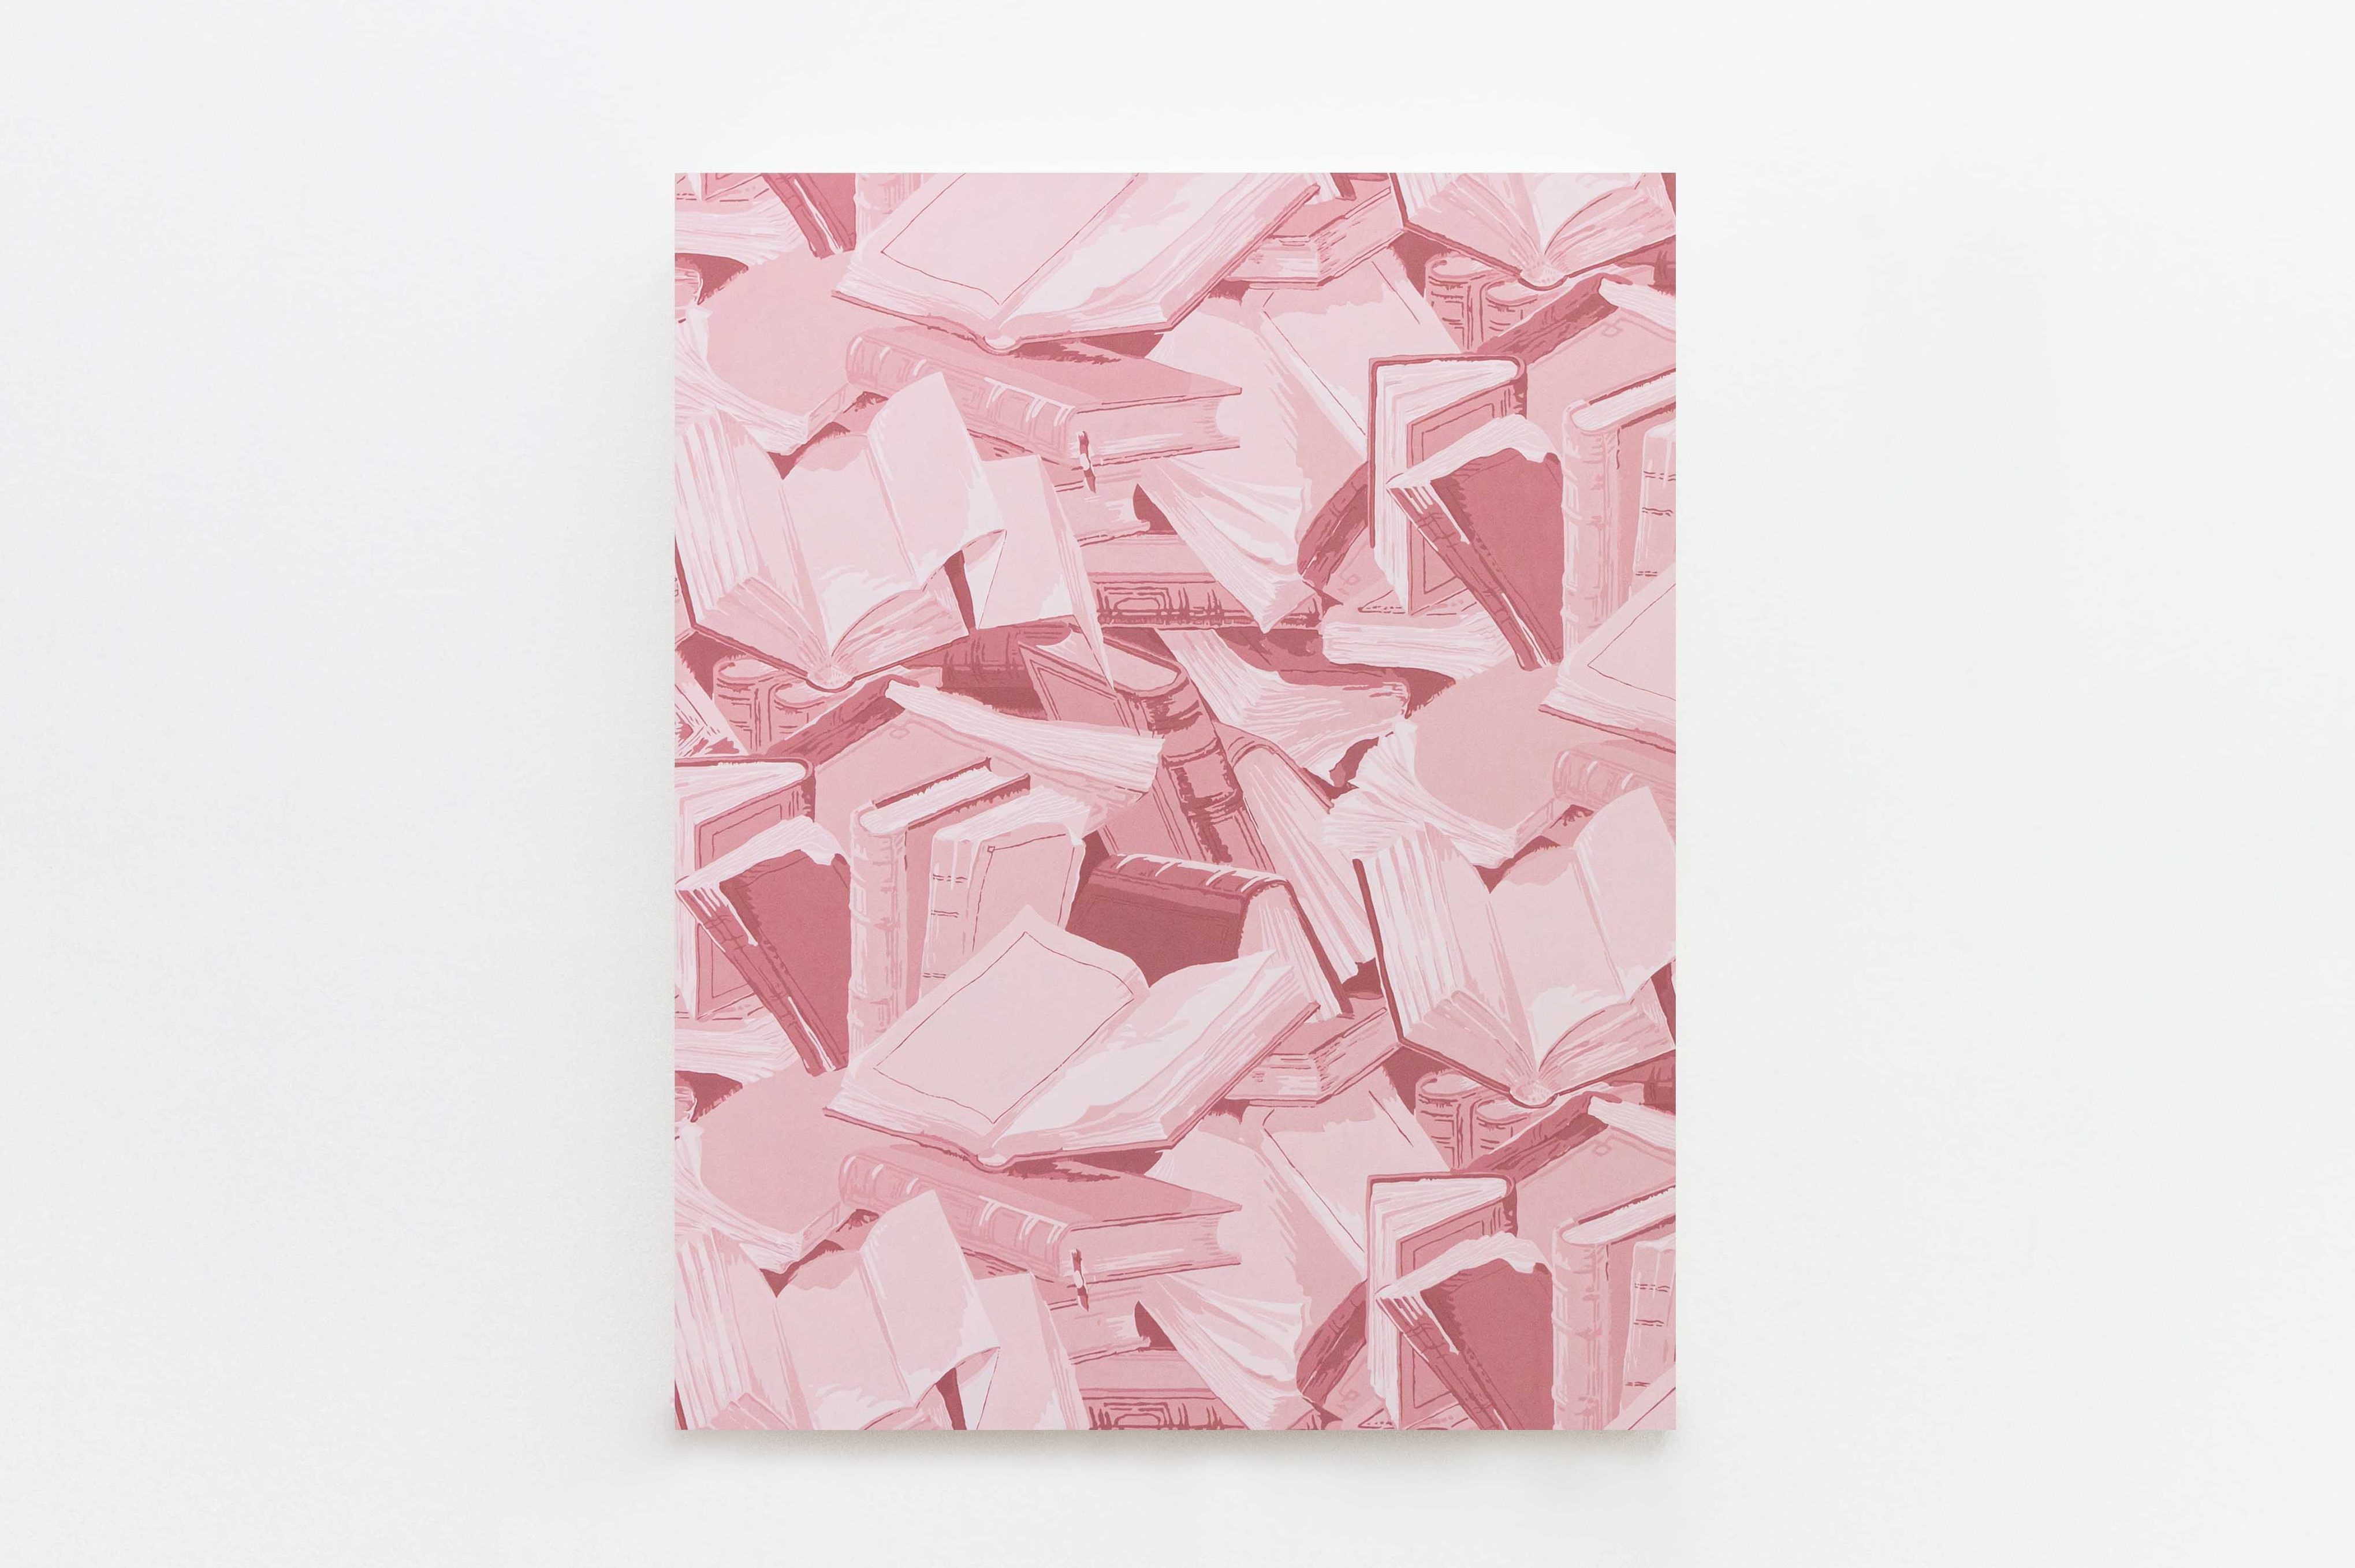 A pile of books, all shaded monochrome soft pink, crowd the entirety of the frame. Some open, some closed, some halfway in between.